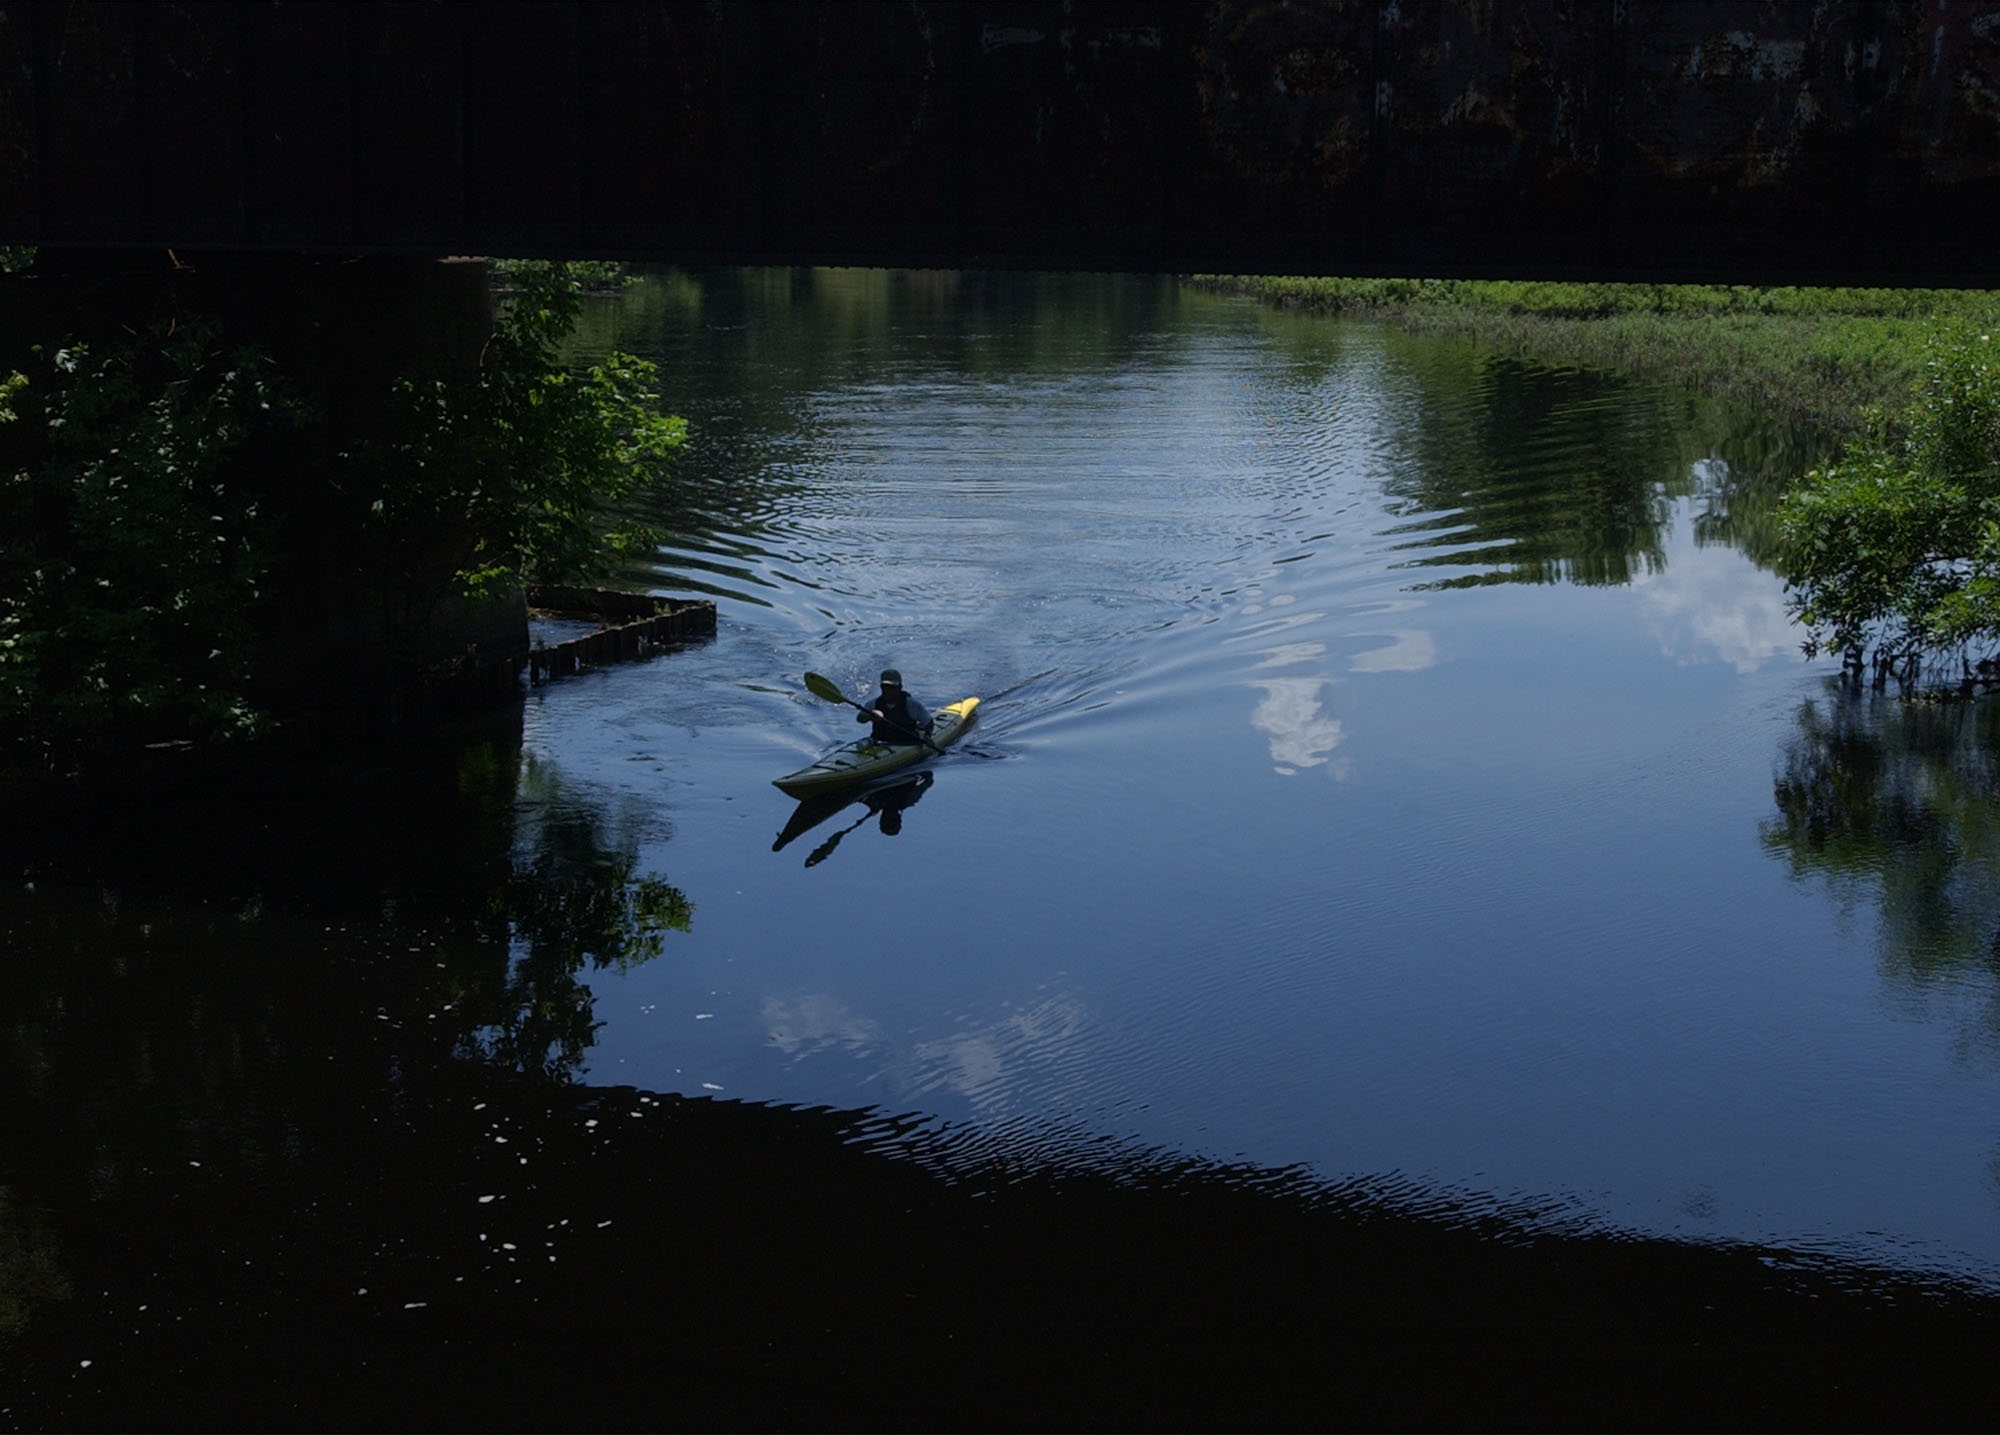 A lone kayaker paddles along the calm waters of the Sudbury River in Concord, Mass., Wednesday, July 2, 2003.